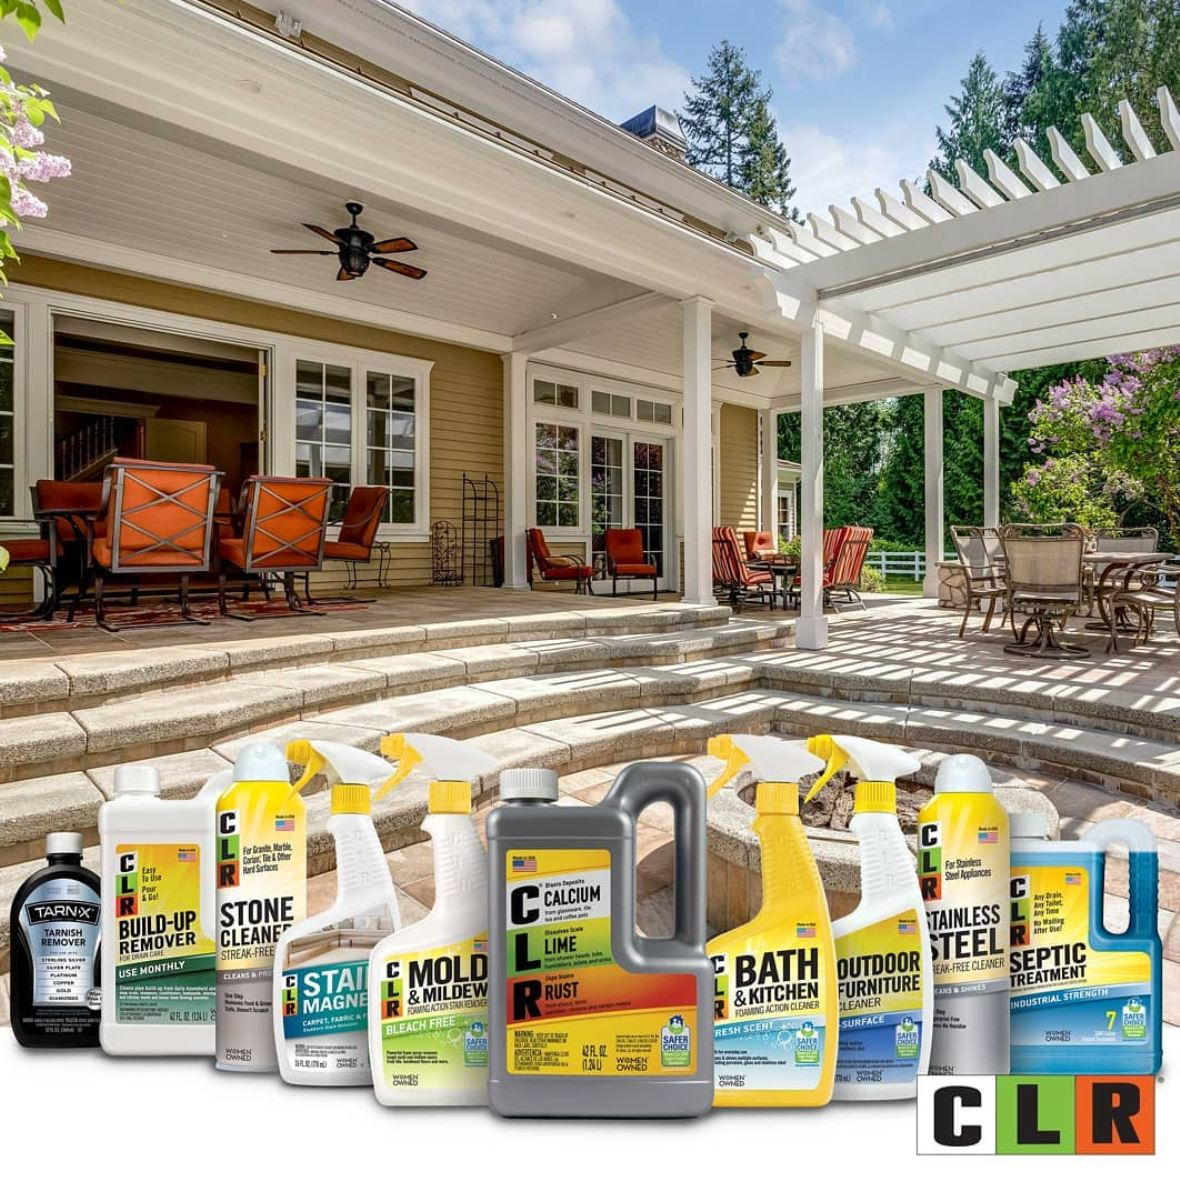 CLR products.JPG